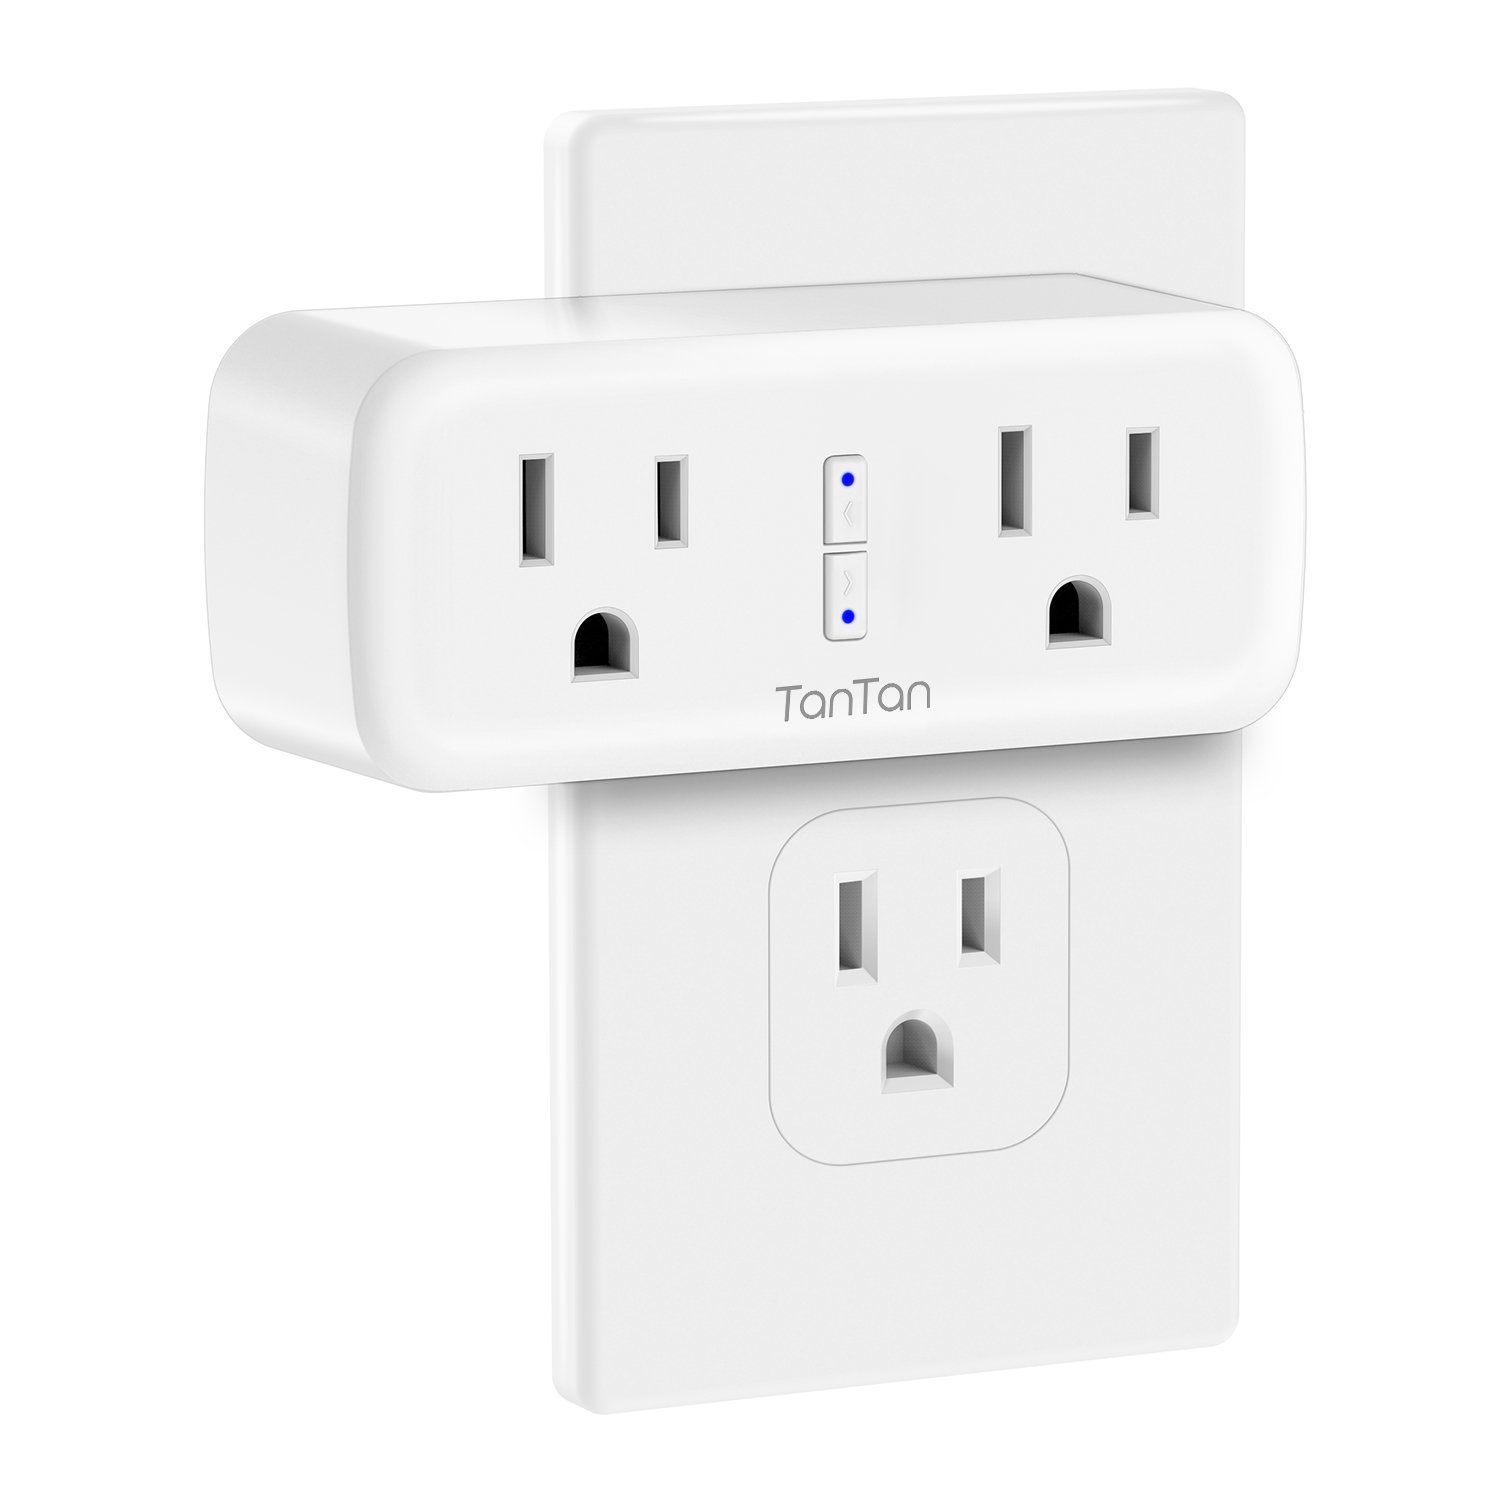 Smart Plug, TanTan [2 in 1] Space-Saving WIFI Mini Smart Outlet with Energy Monitoring, Work with Amazon Alexa and Google Assistant & IFTTT, Remote Control from Anywhere by TanTan